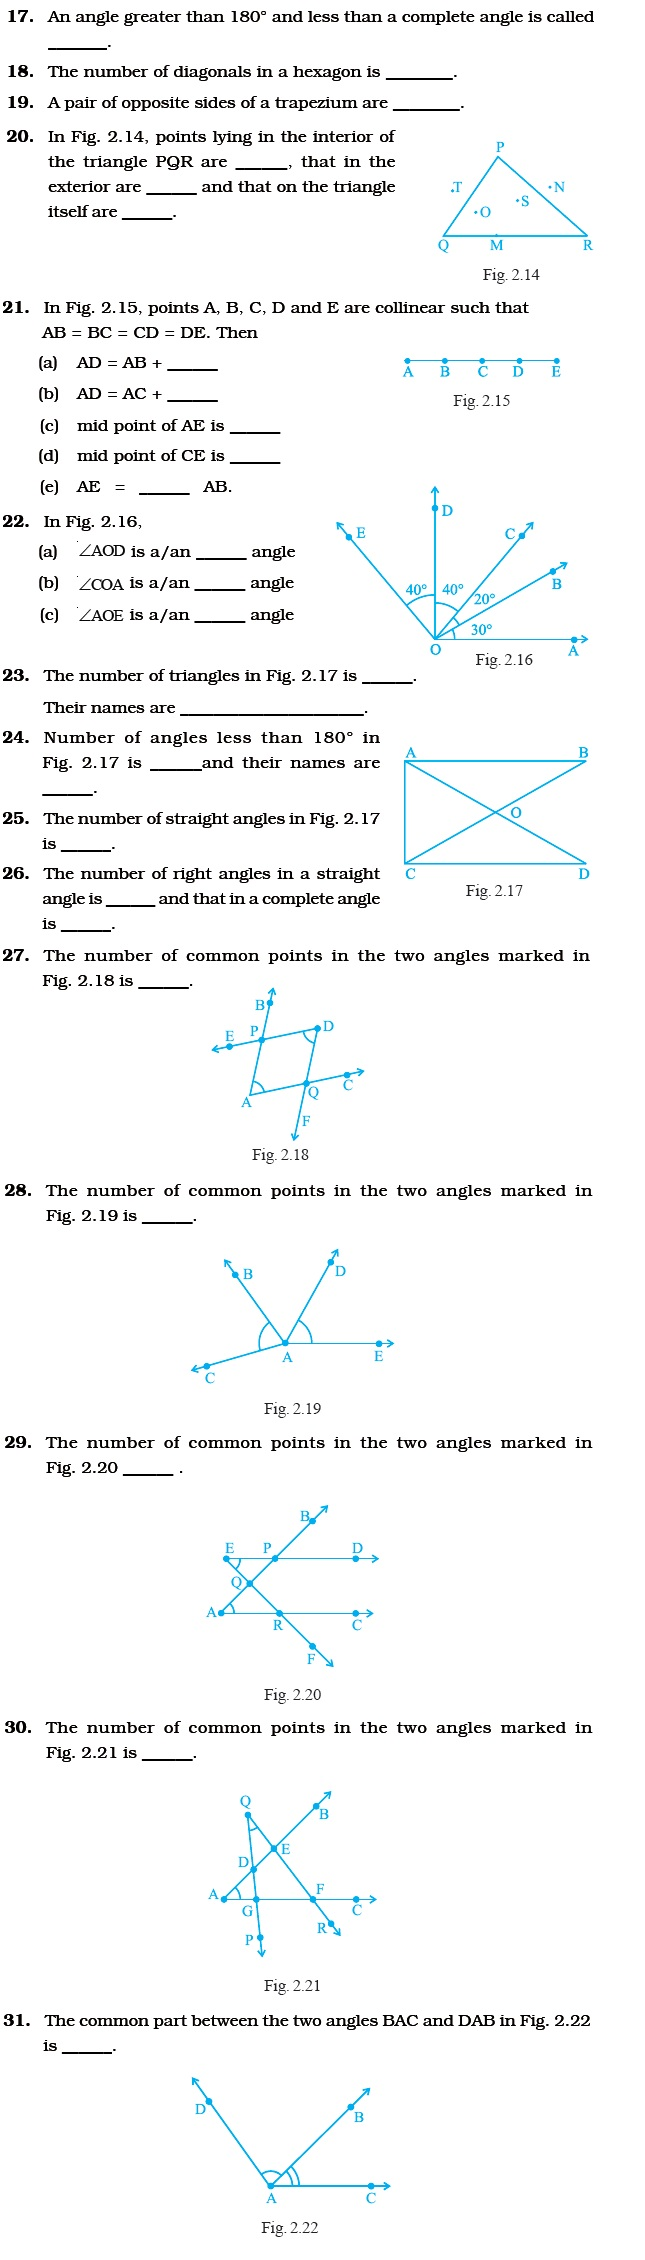 class 6 important questions for maths geometry